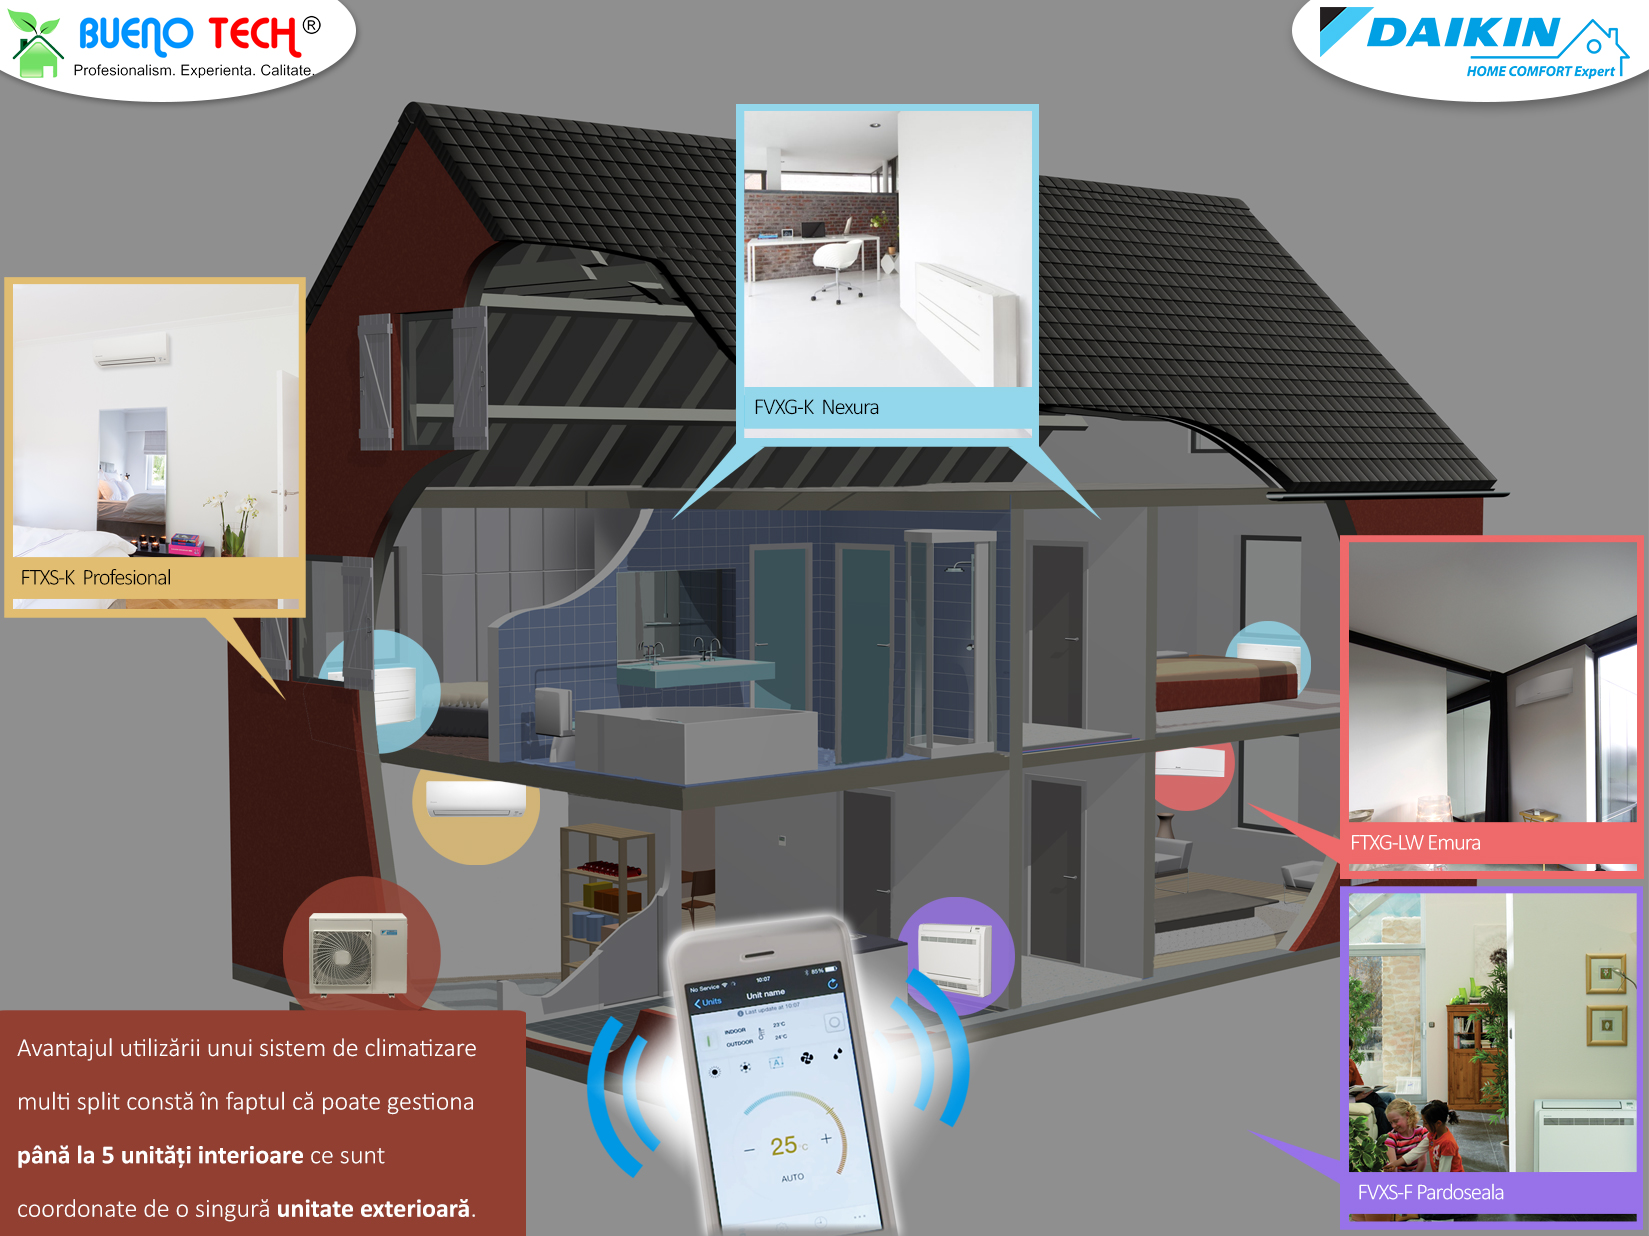 sistem-multi-split-daikin-bueno-tech